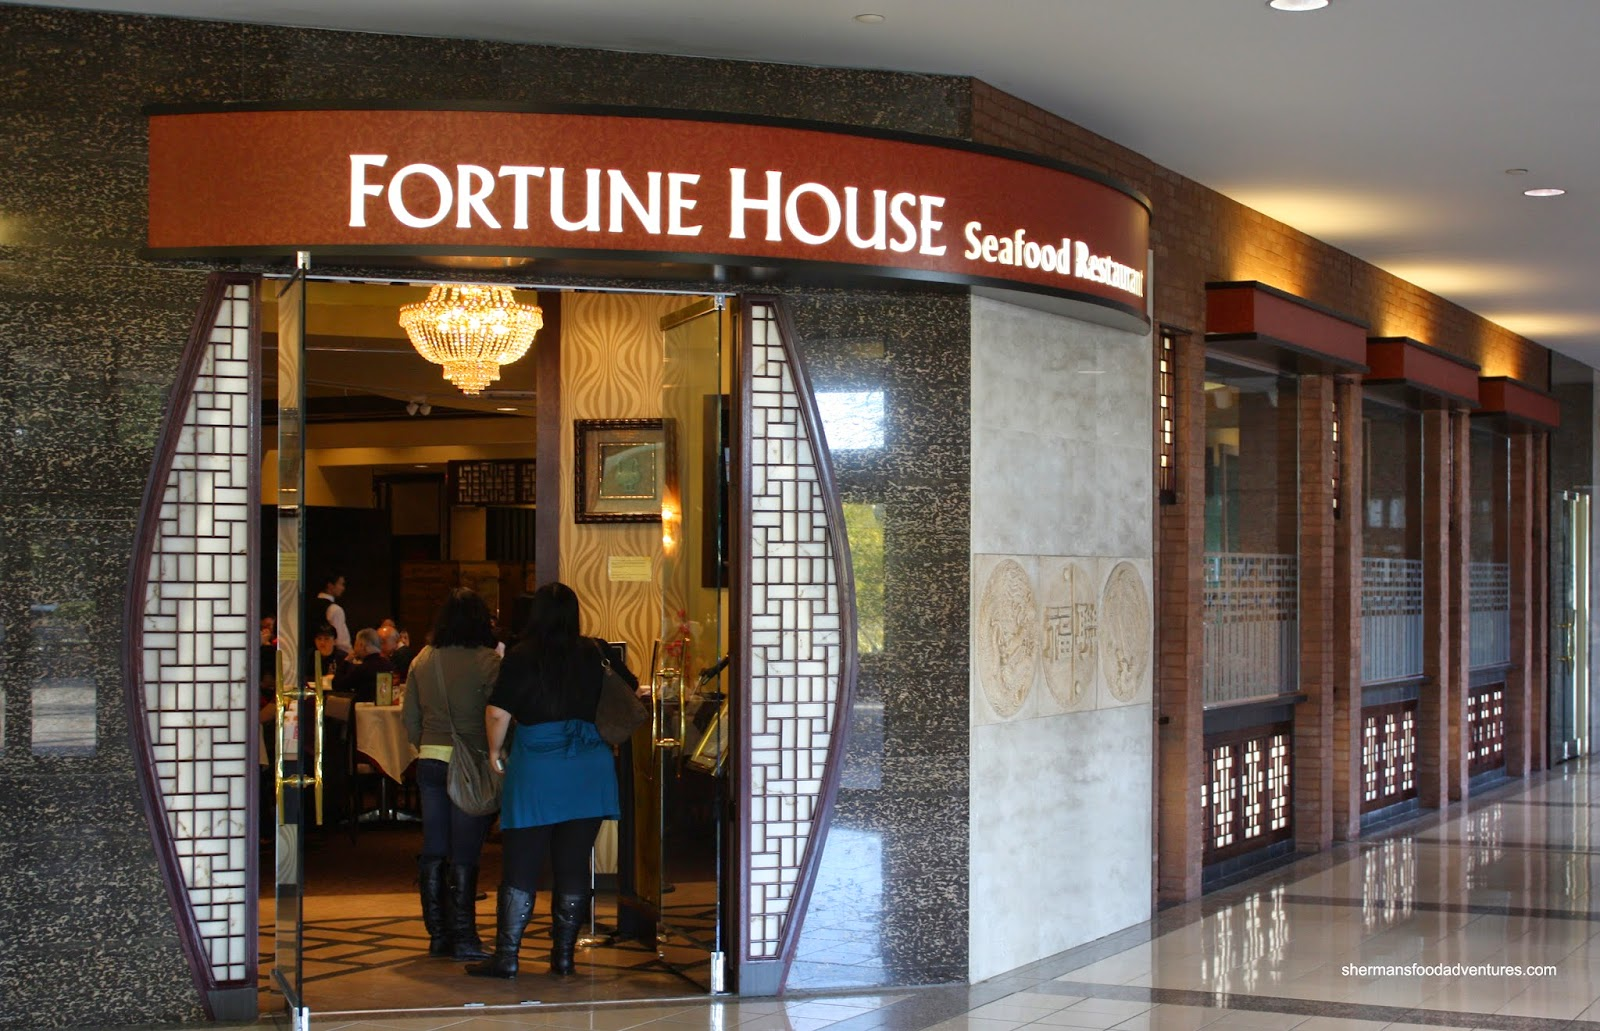 Sherman's Food Adventures: Fortune House Seafood Restaurant